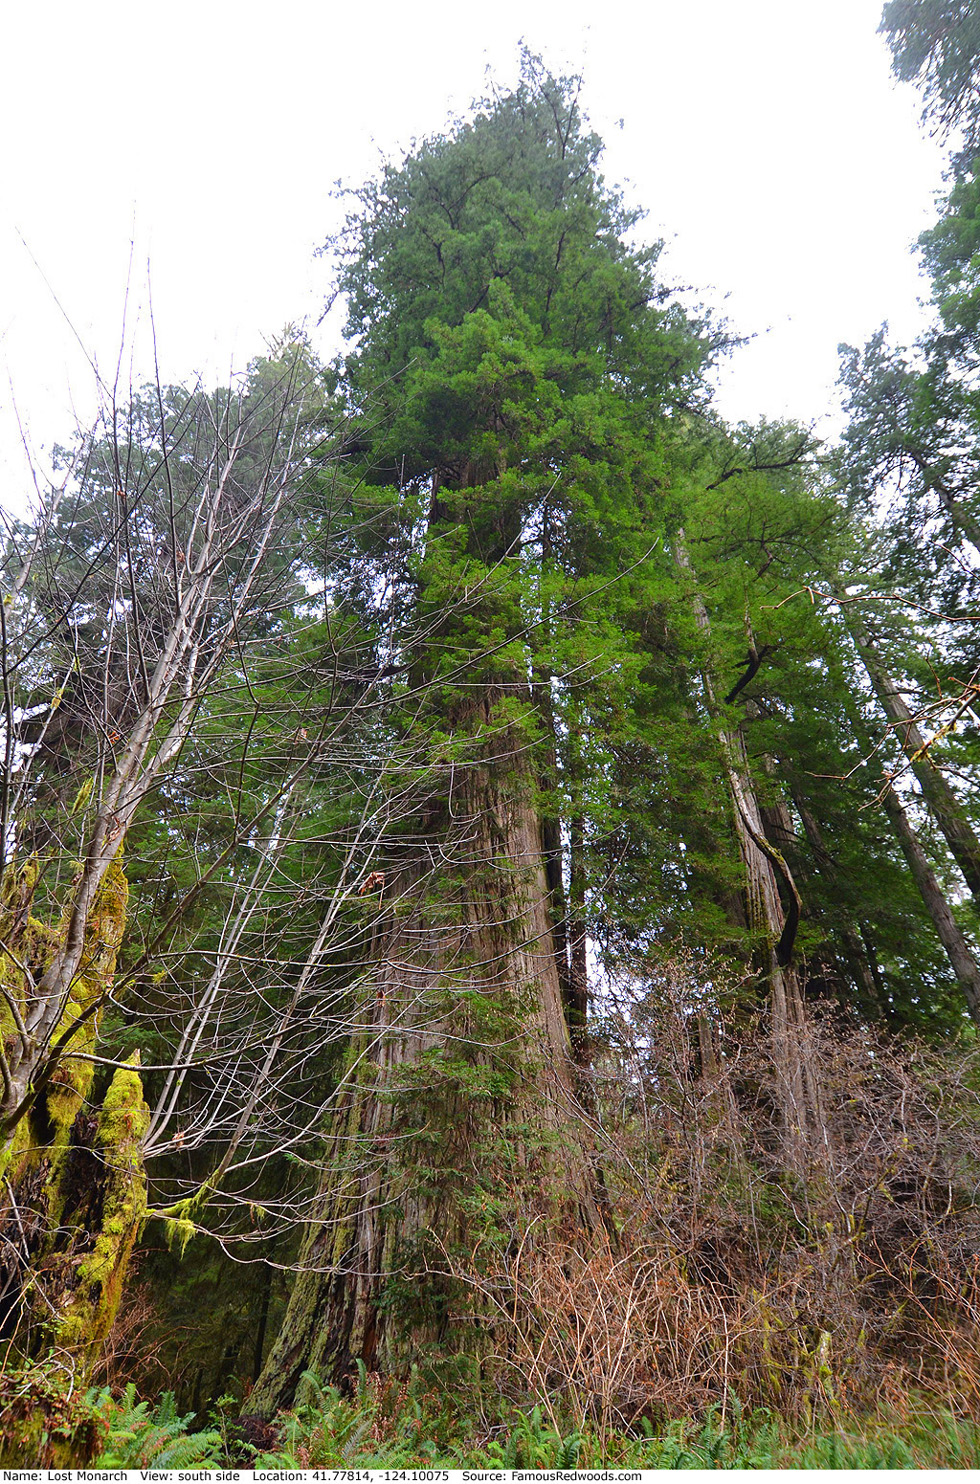 Lost Monarch Tree - Famous RedwoodsLost Monarch Tree